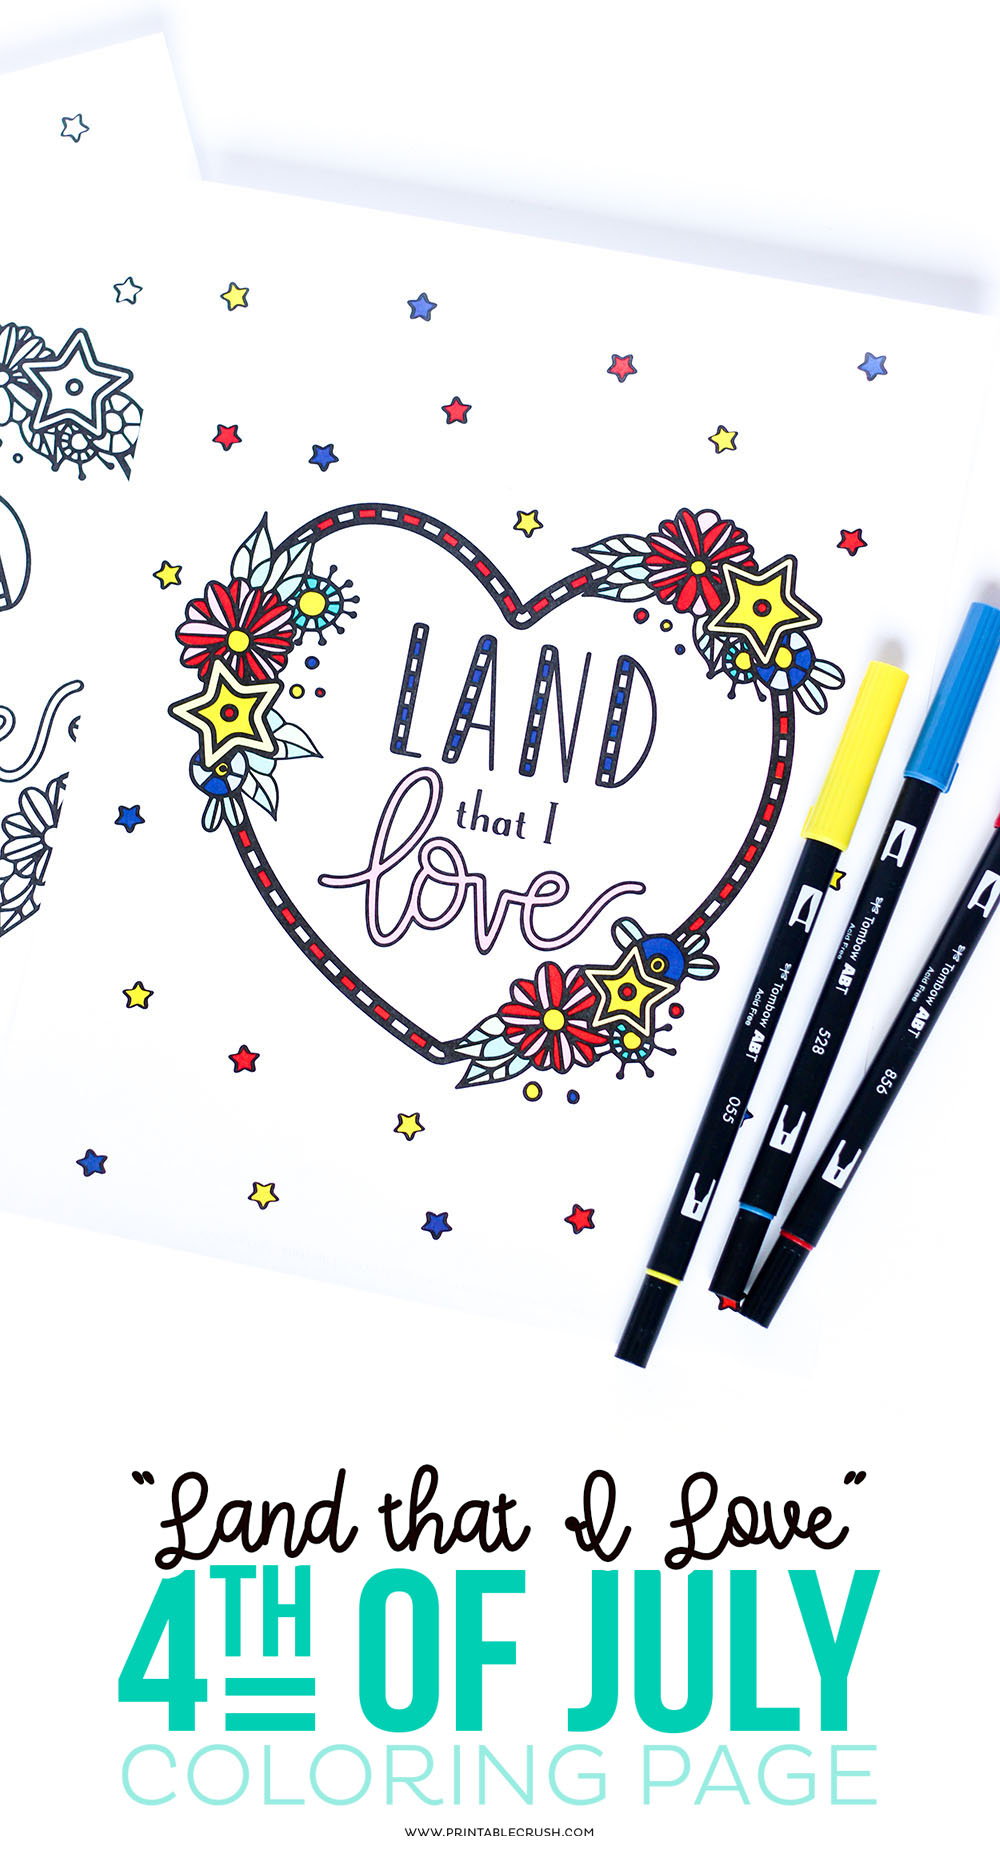 Download this free Land That I Love Fourth of July Coloring Page for a fun summer activity! Kids and adults will love this hand lettered and hand drawn design!